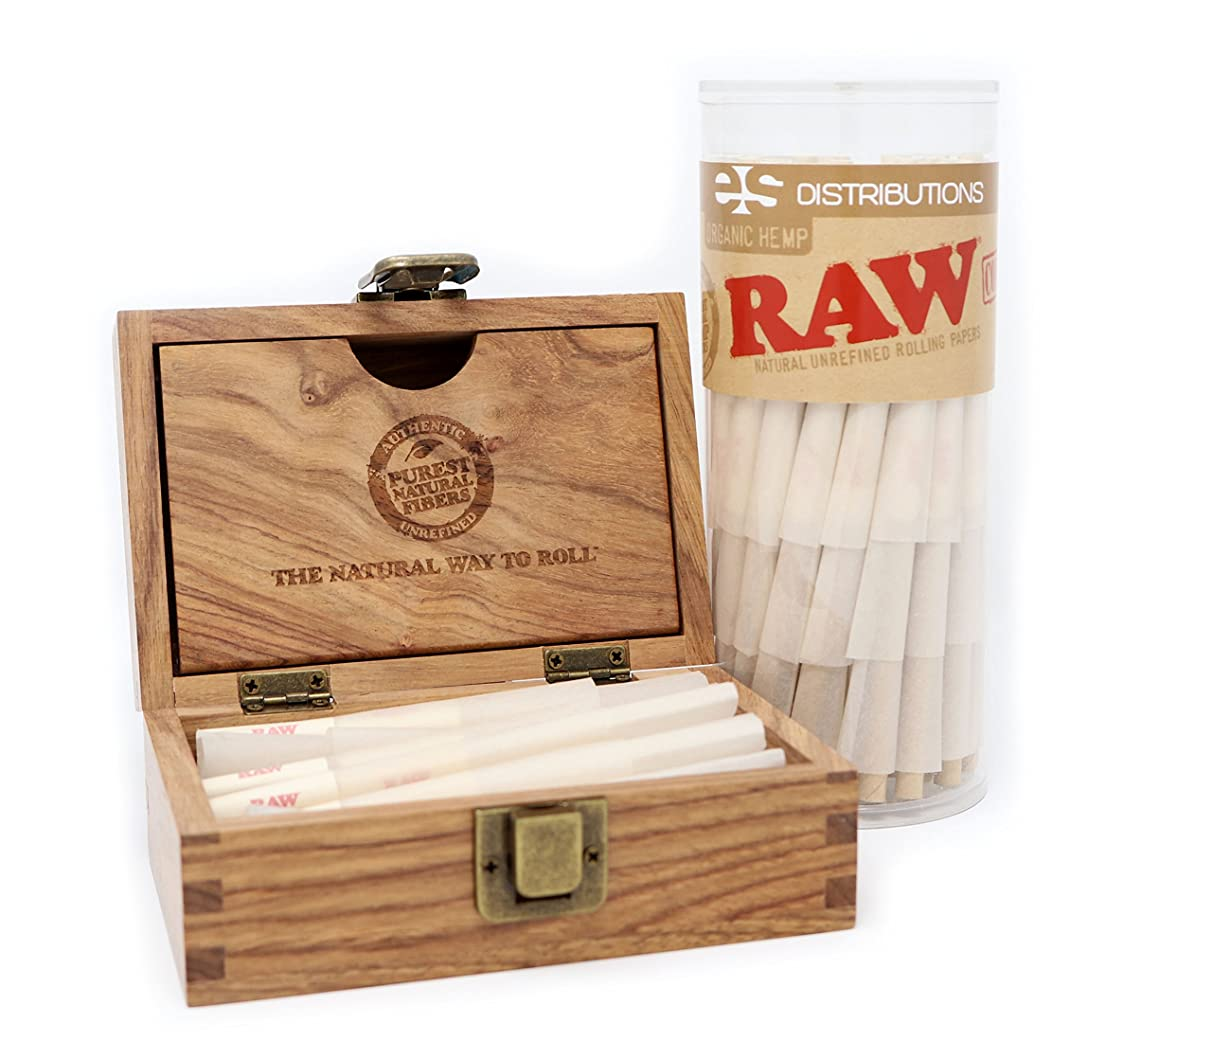 RAW Organic 1 1/4 Pre-Rolled Cones with Filter Tips - Bundle (75 Pack with RAW Storage Box)